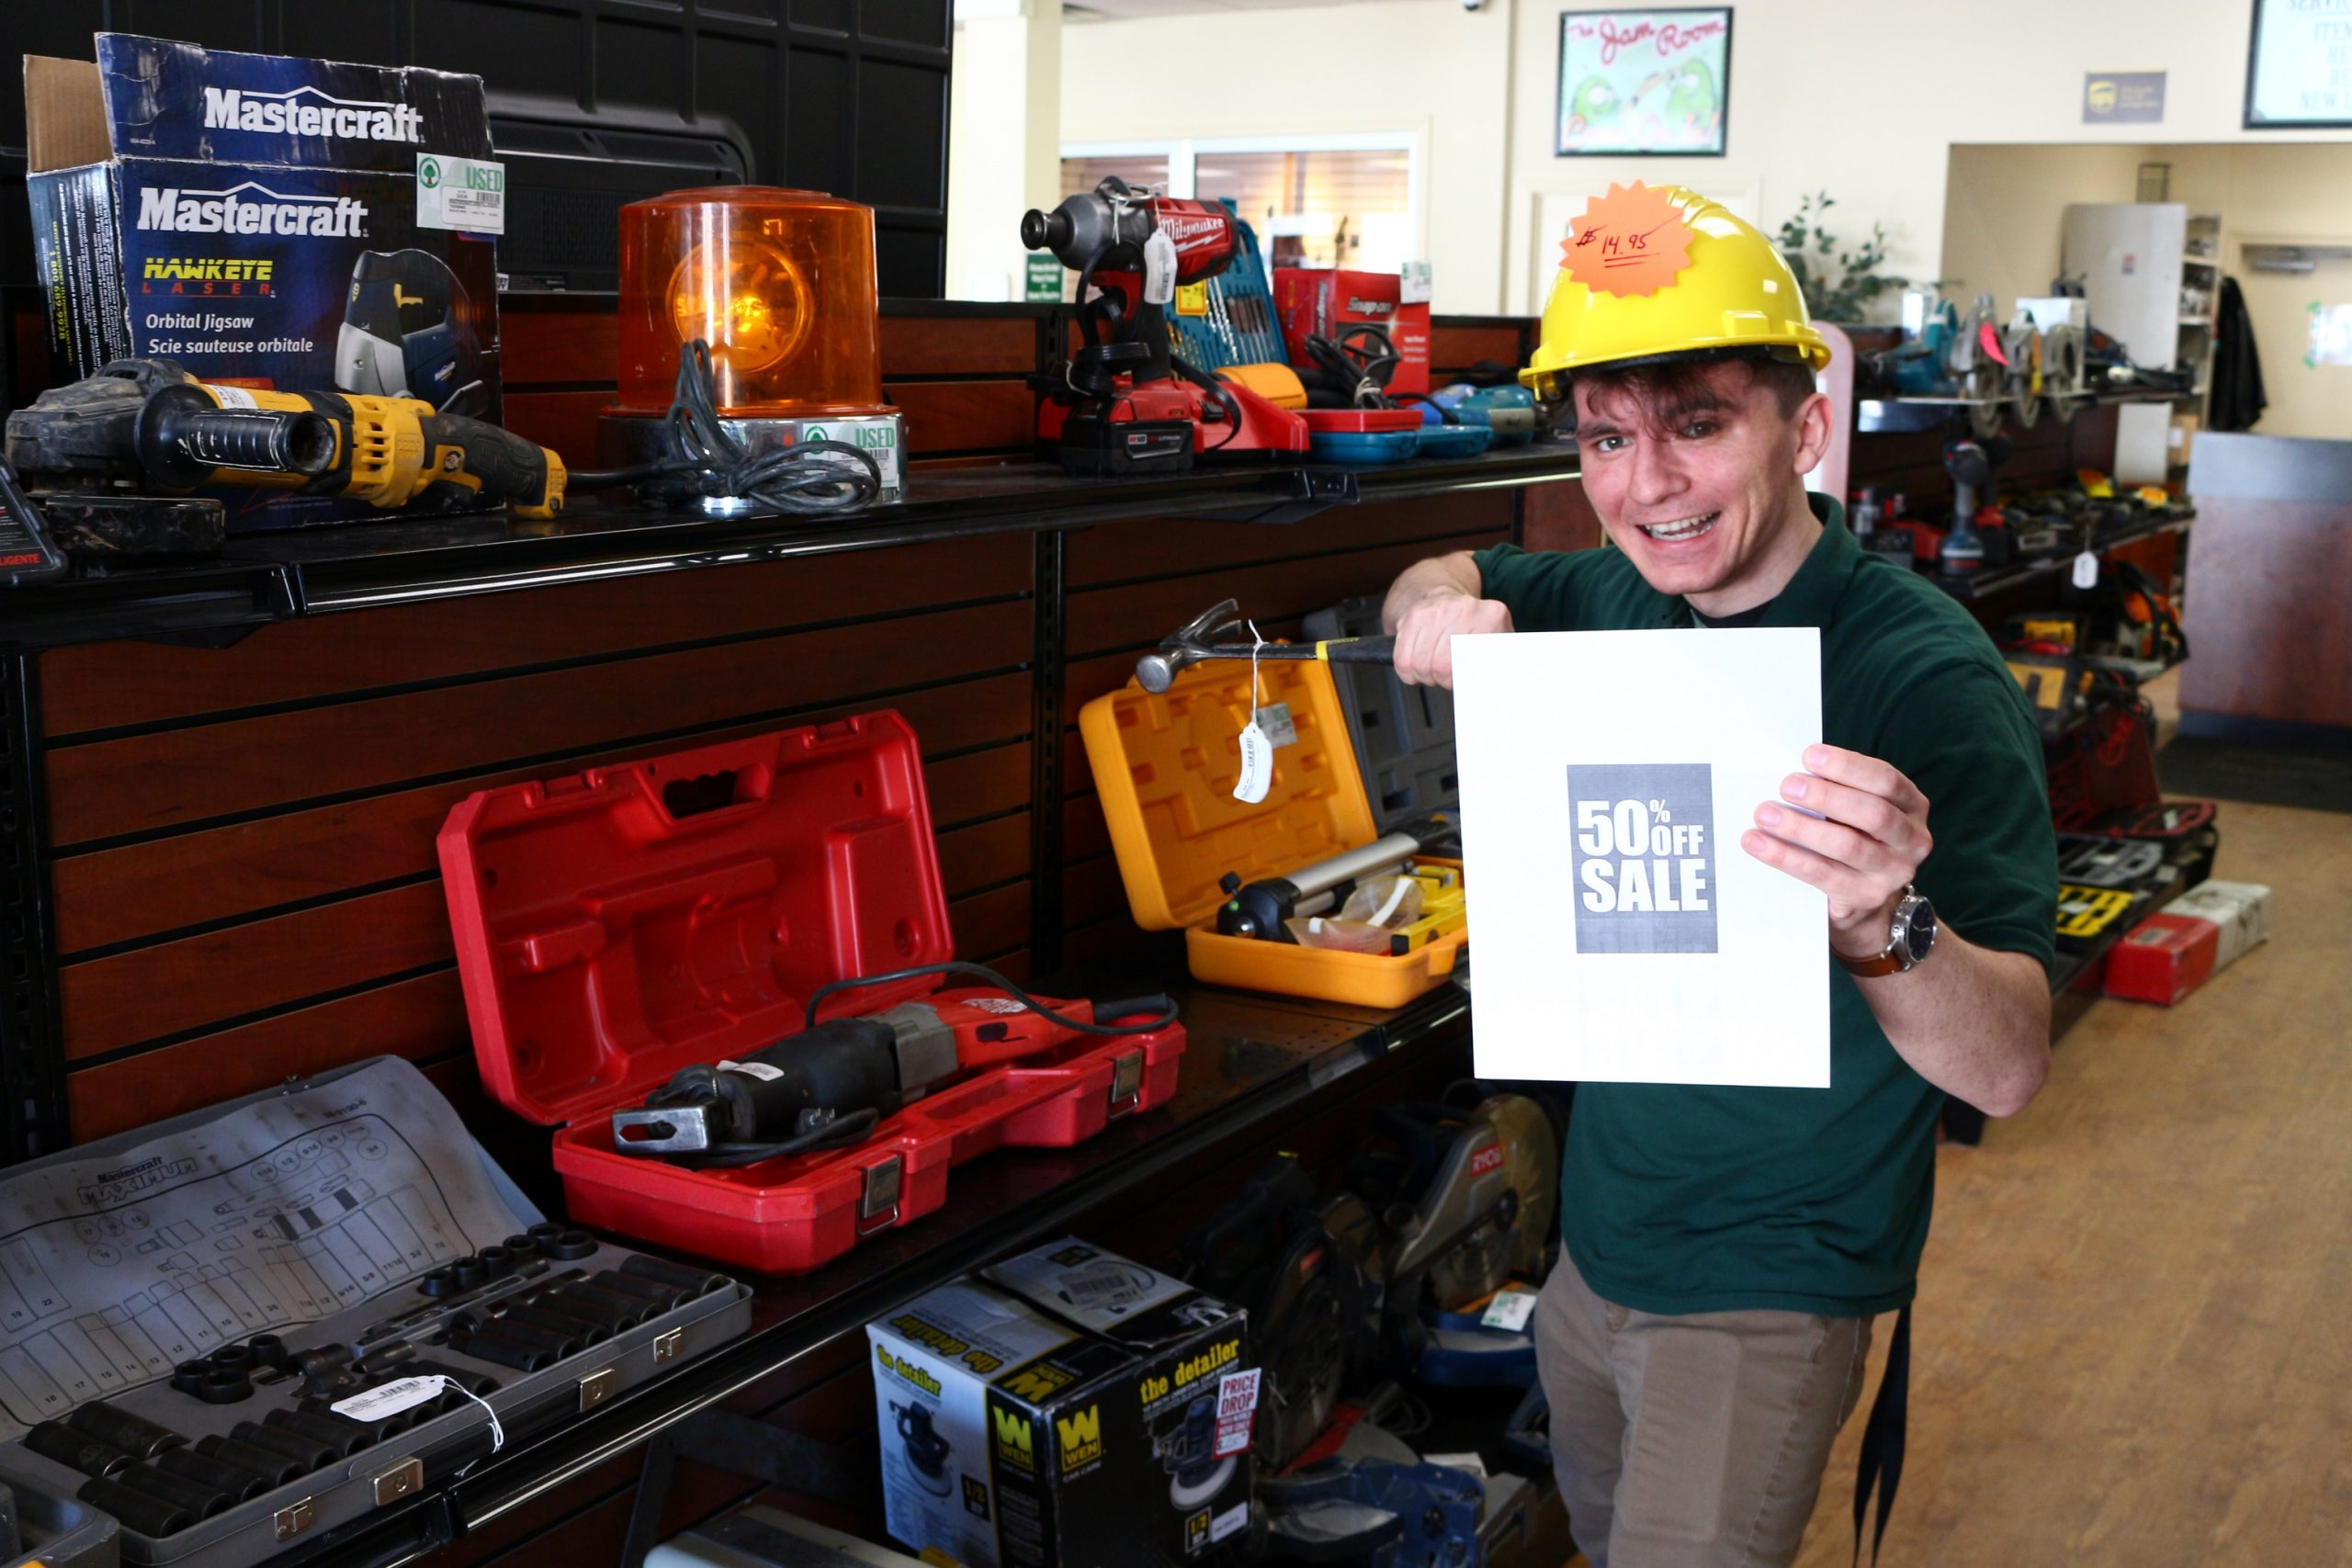 Evergreen Traders marked down almost all of their tools!